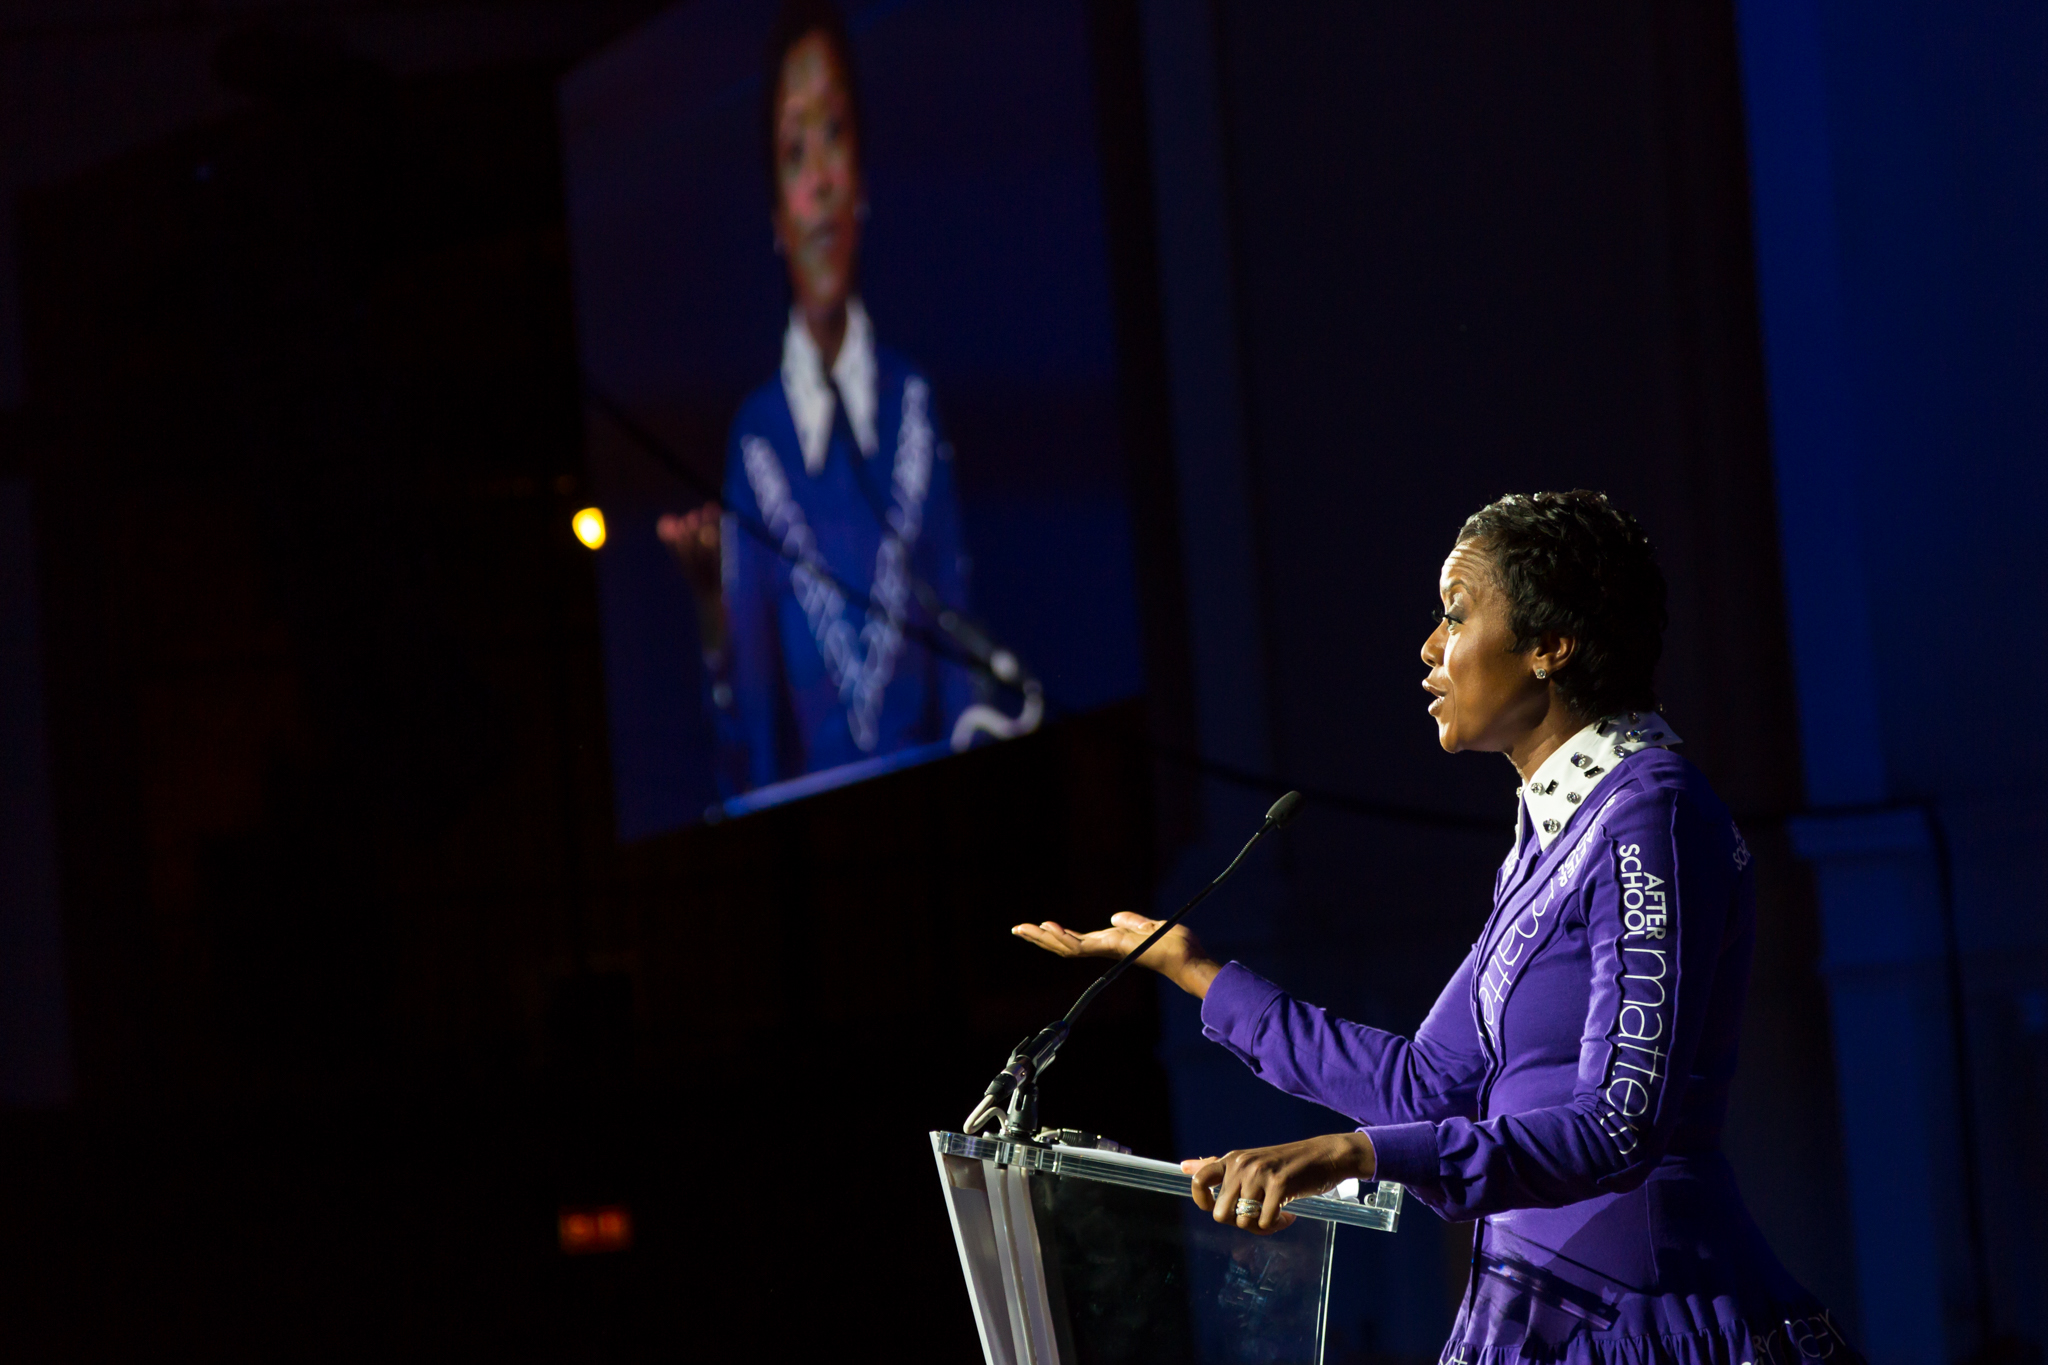 <p>After School Matters Board Chair Mellody Hobson speaks to the crowd of 1,000 supporters at the After School Matters Annual Gala on September 21, 2015 in the Grand Ballroom of Chicago's historic Navy Pier. Photo credit: Juan Martinez</p>